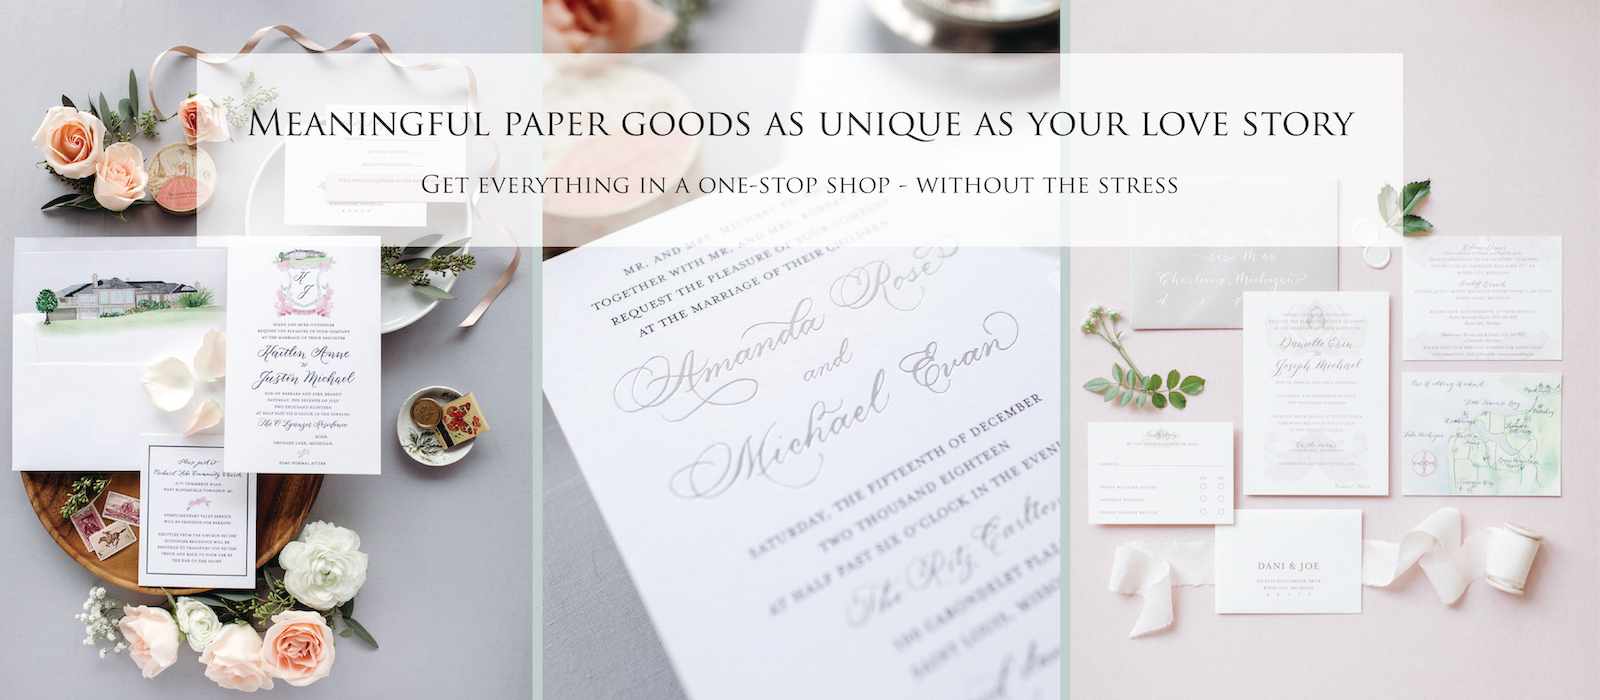 meaningful paper goods as unique as your love story - Leah E. Moss Designs